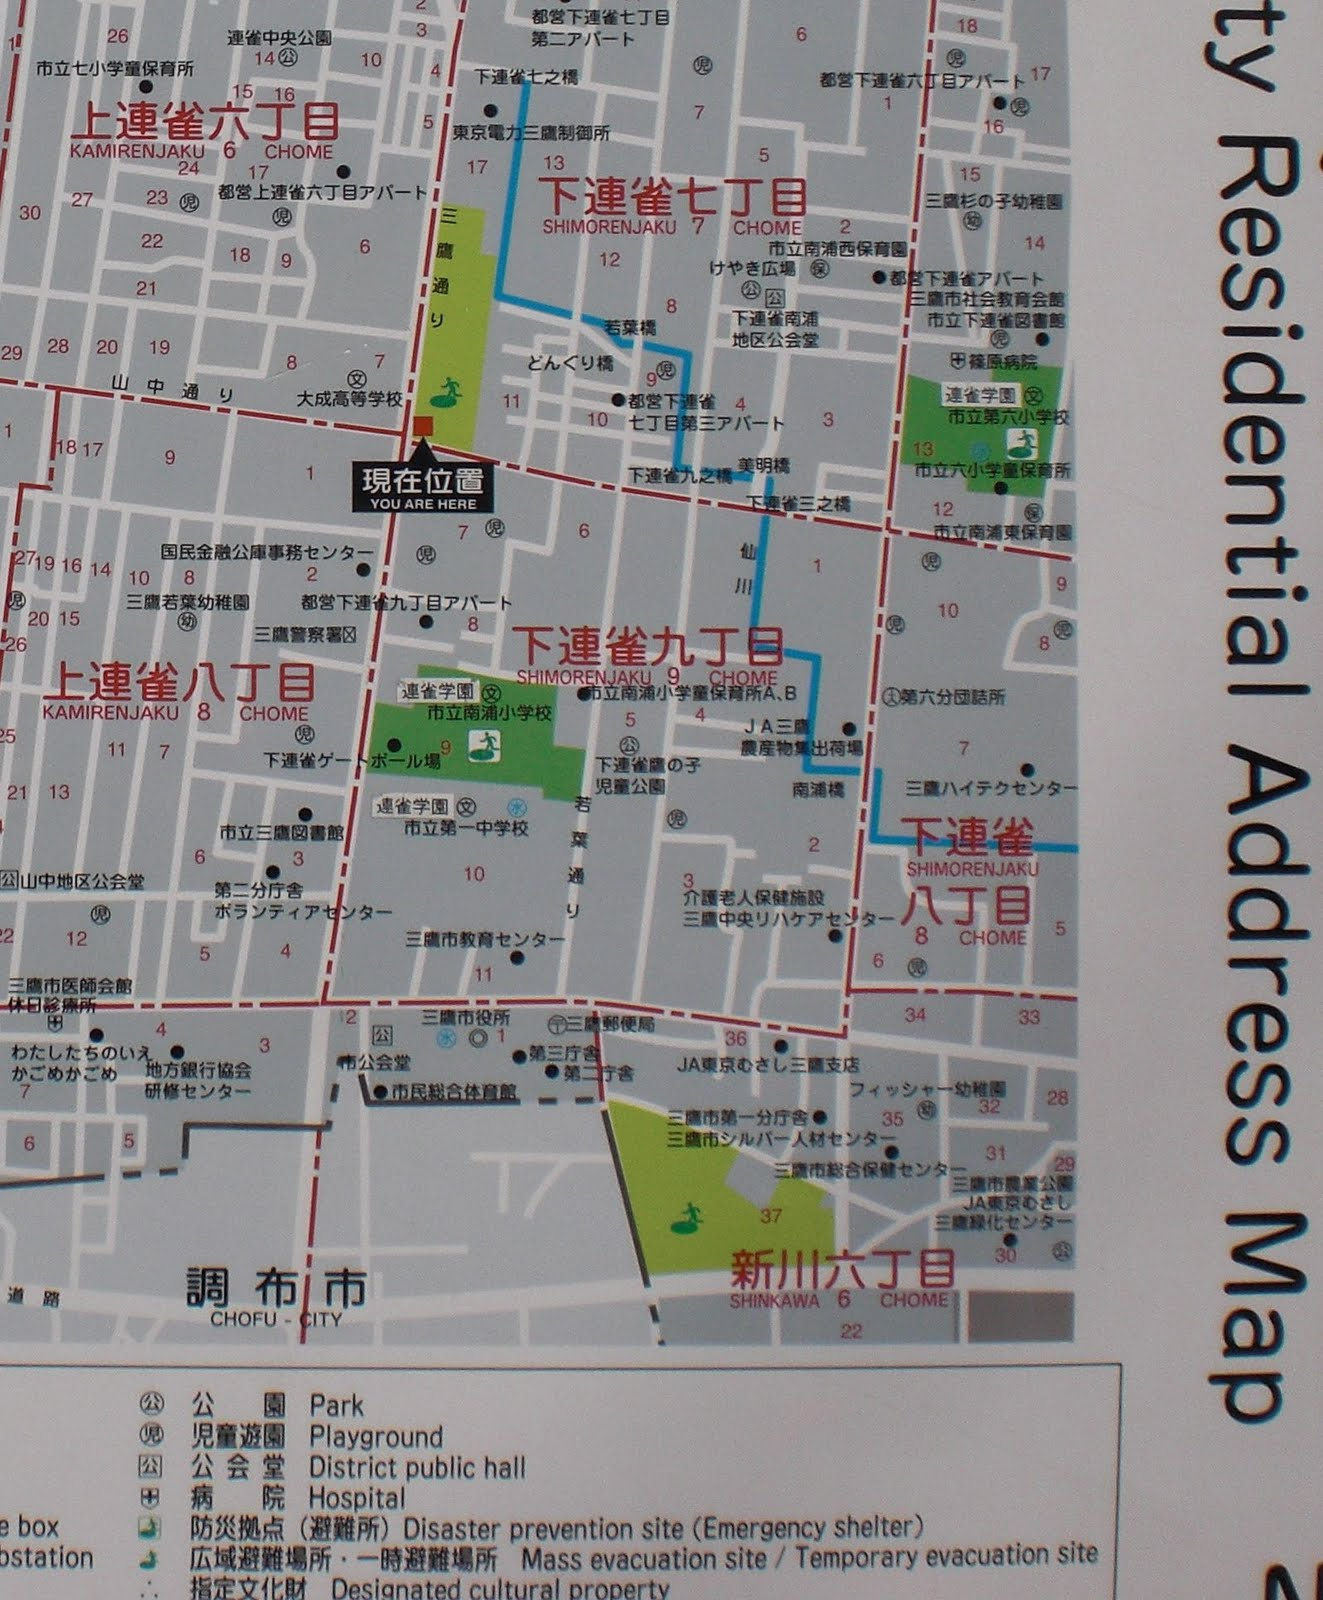 photo local maps give locations of emergency shelters mass evacuation sites and places to get emergency water i live near all three